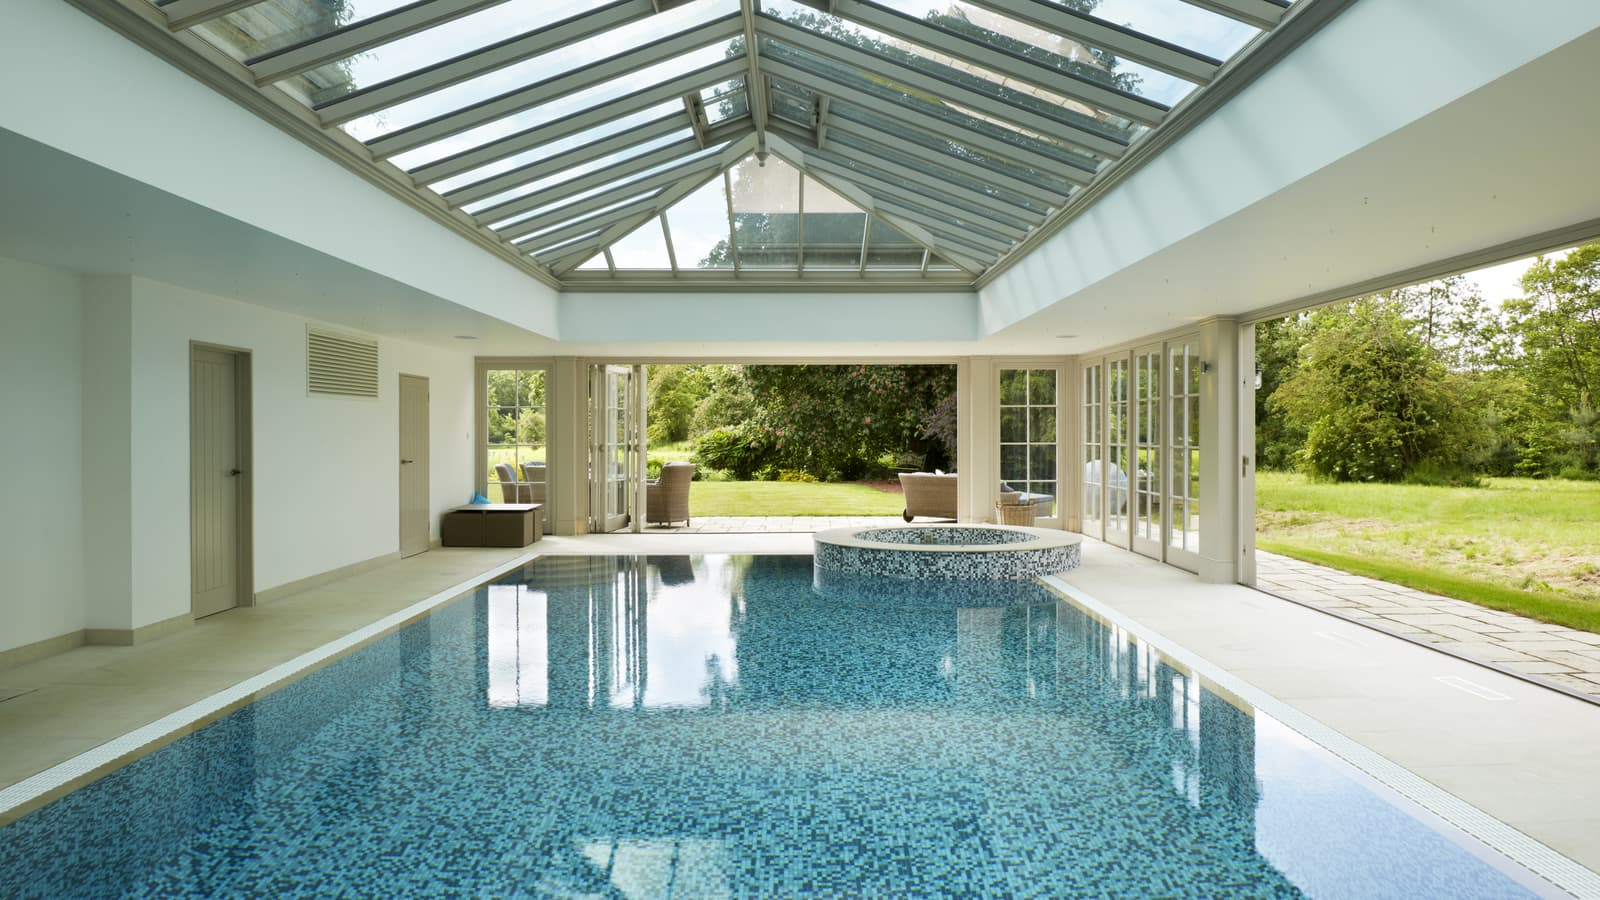 Swimming pools – the global symbol of domestic opulence